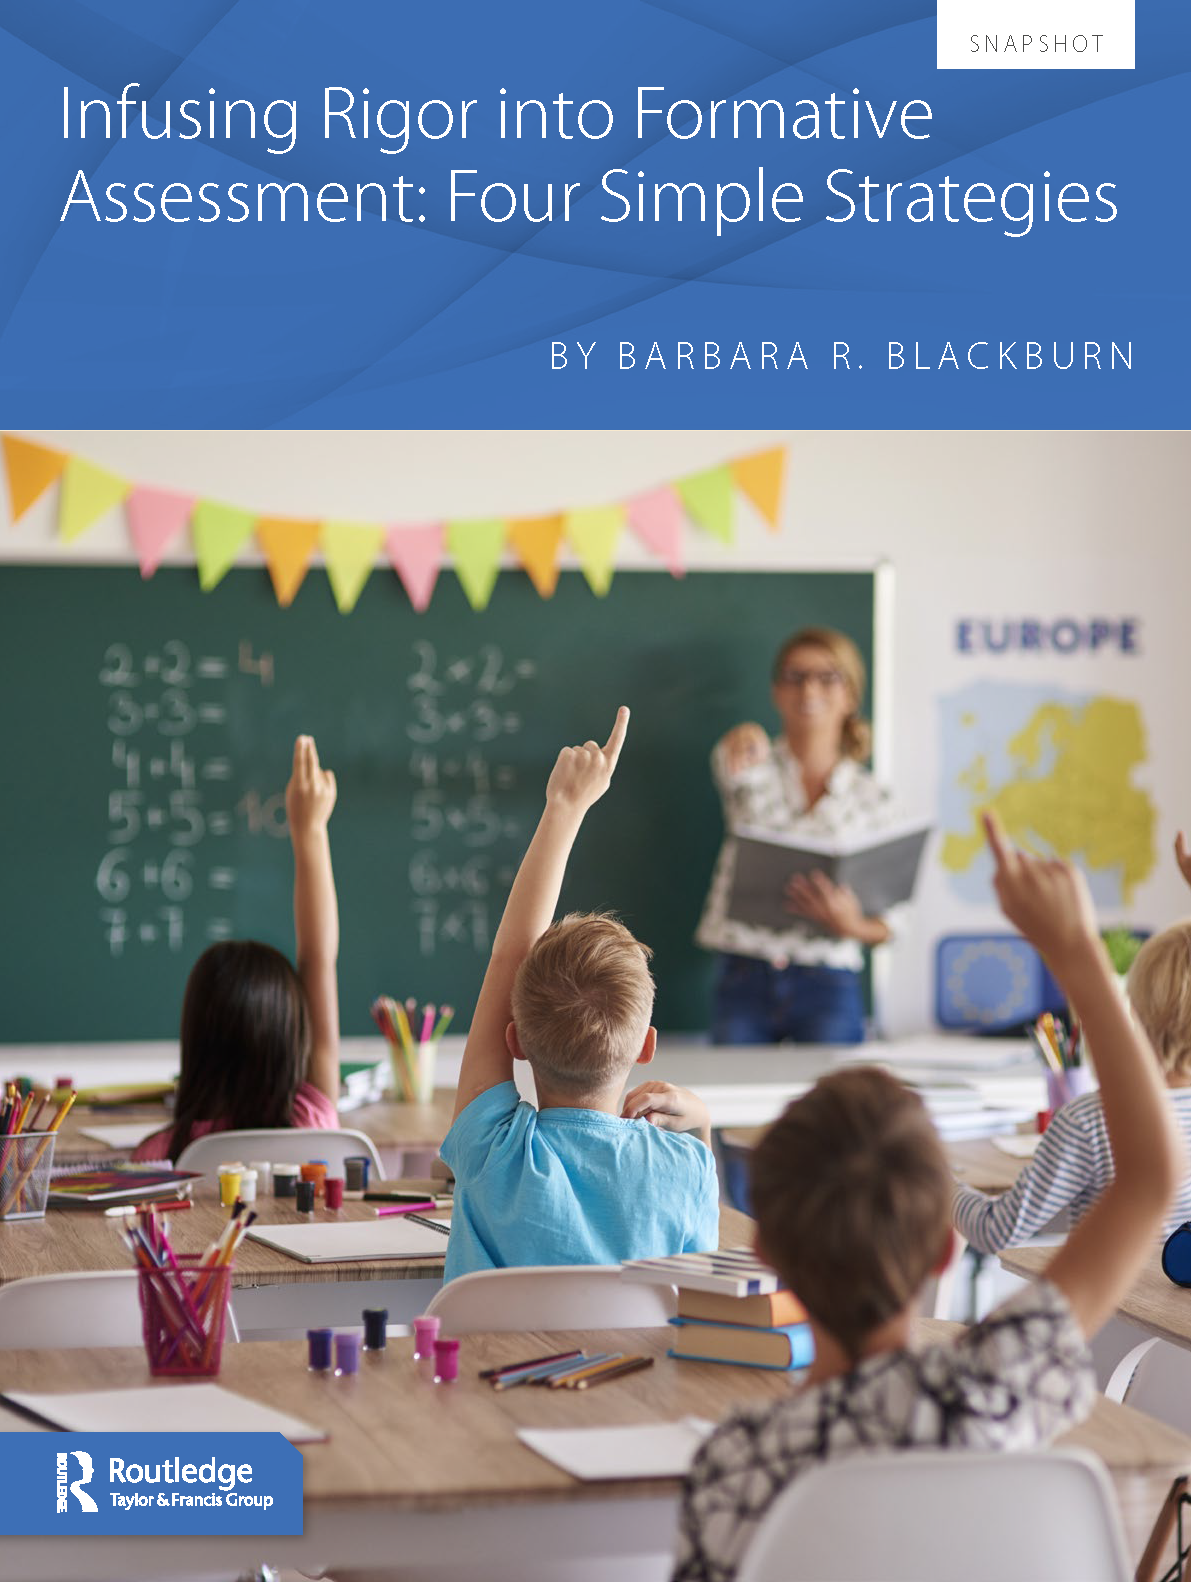 Infusing Rigor into Formative Assessment: Four Simple Strategies